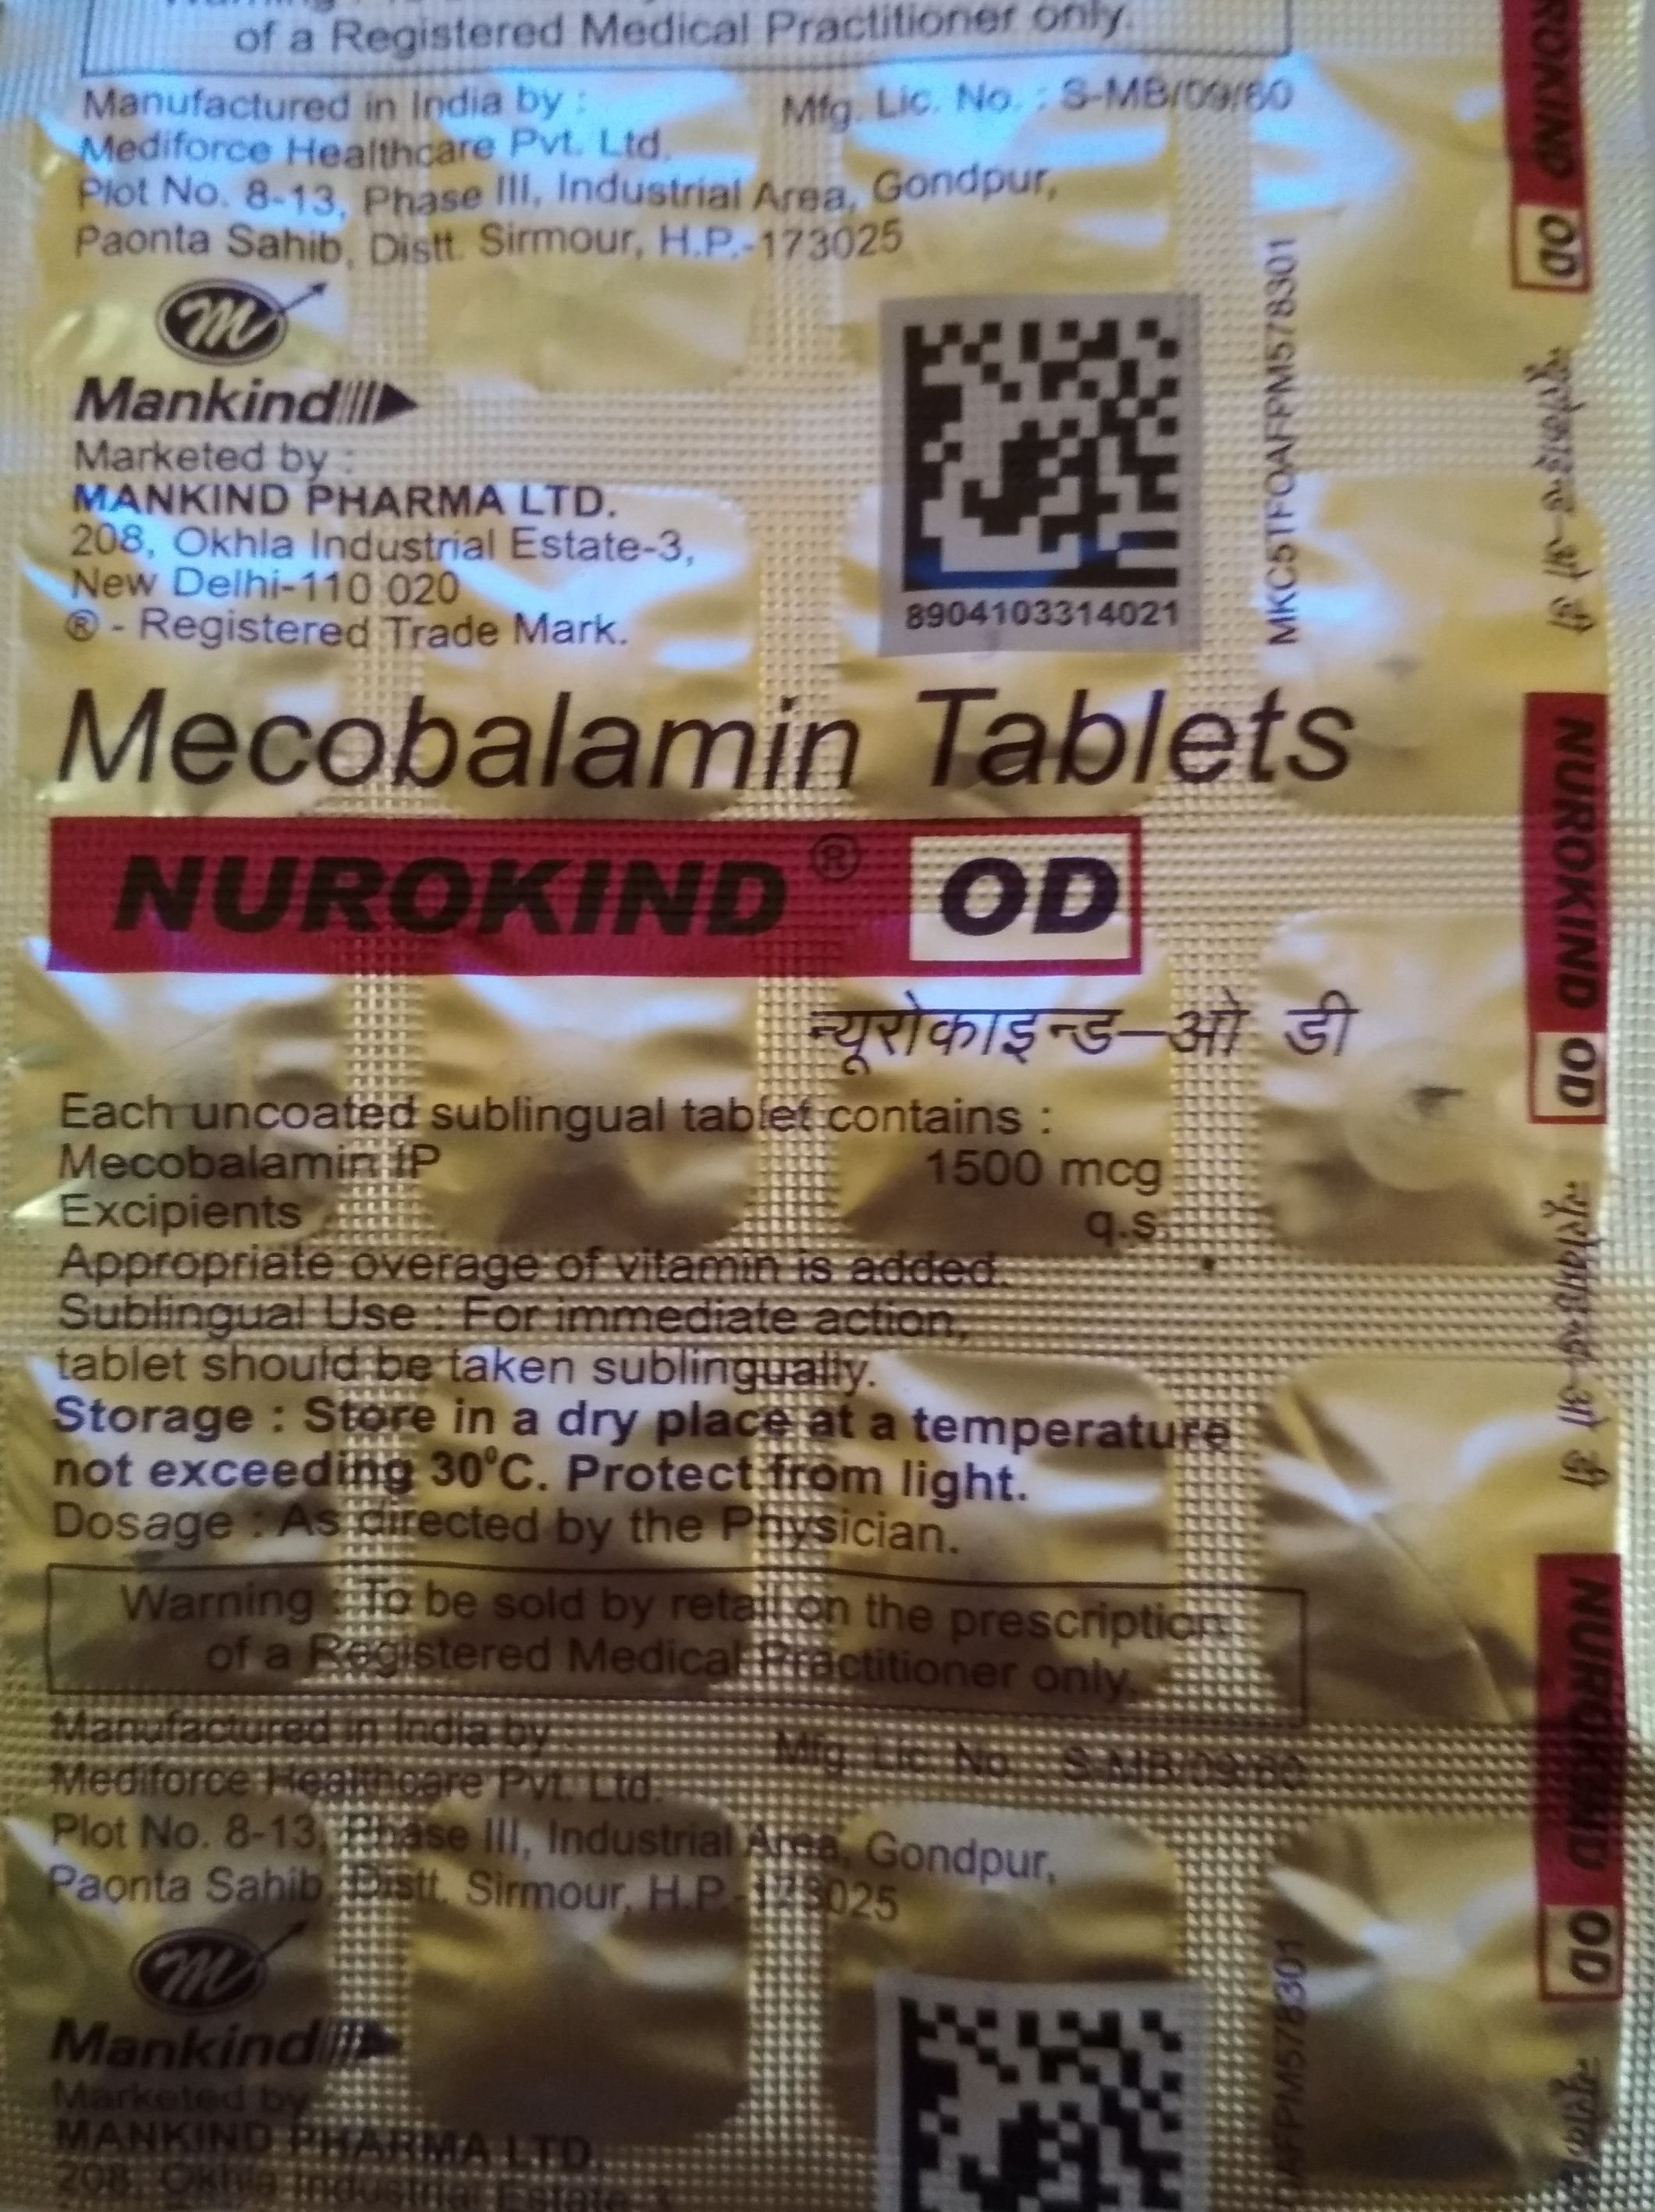 <b>NUROKIND - Vitamin B12</B><BR>NUROKIND<BR>1 blister of 20 tablets x 1500mcg